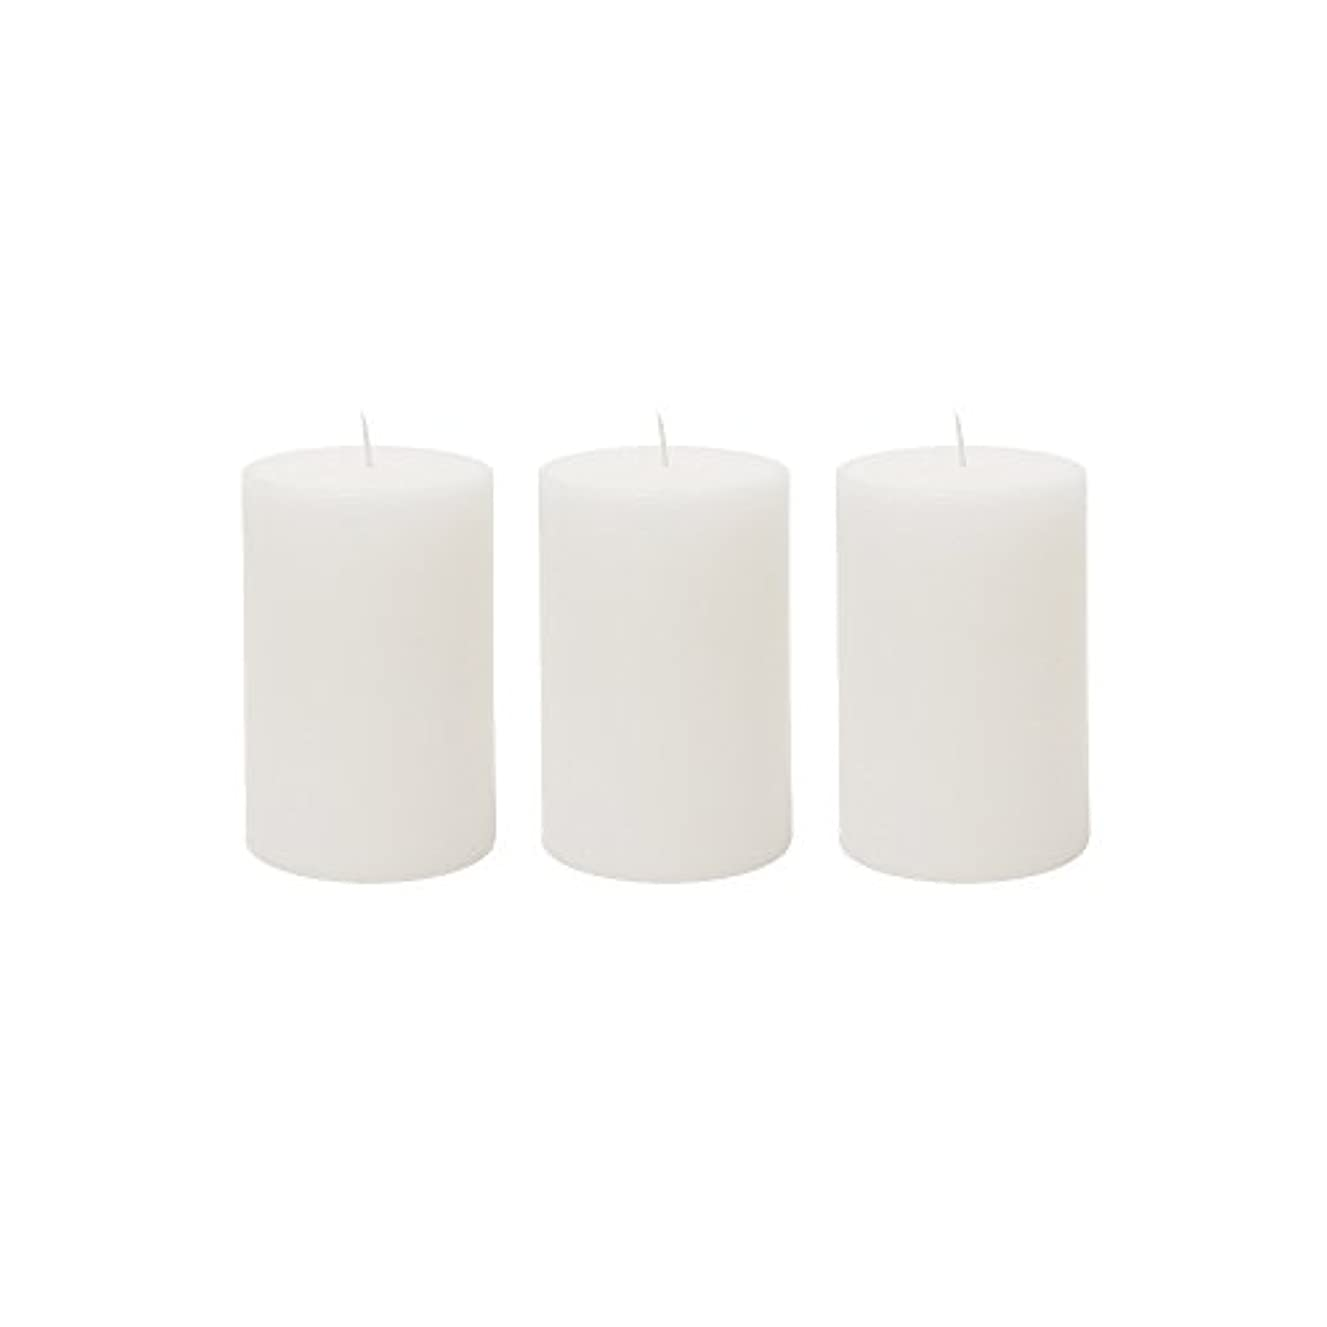 緩める全国九時四十五分(3, 5.1cm x 7.6cm Round) - Mega Candles 3 pcs Unscented White Round Pillar Candle Hand Poured Premium Wax Candles 5.1cm x 7.6cm For Home Decor, Wedding Receptions, Baby Showers, Birthdays, Celebrations, Party Favours & More